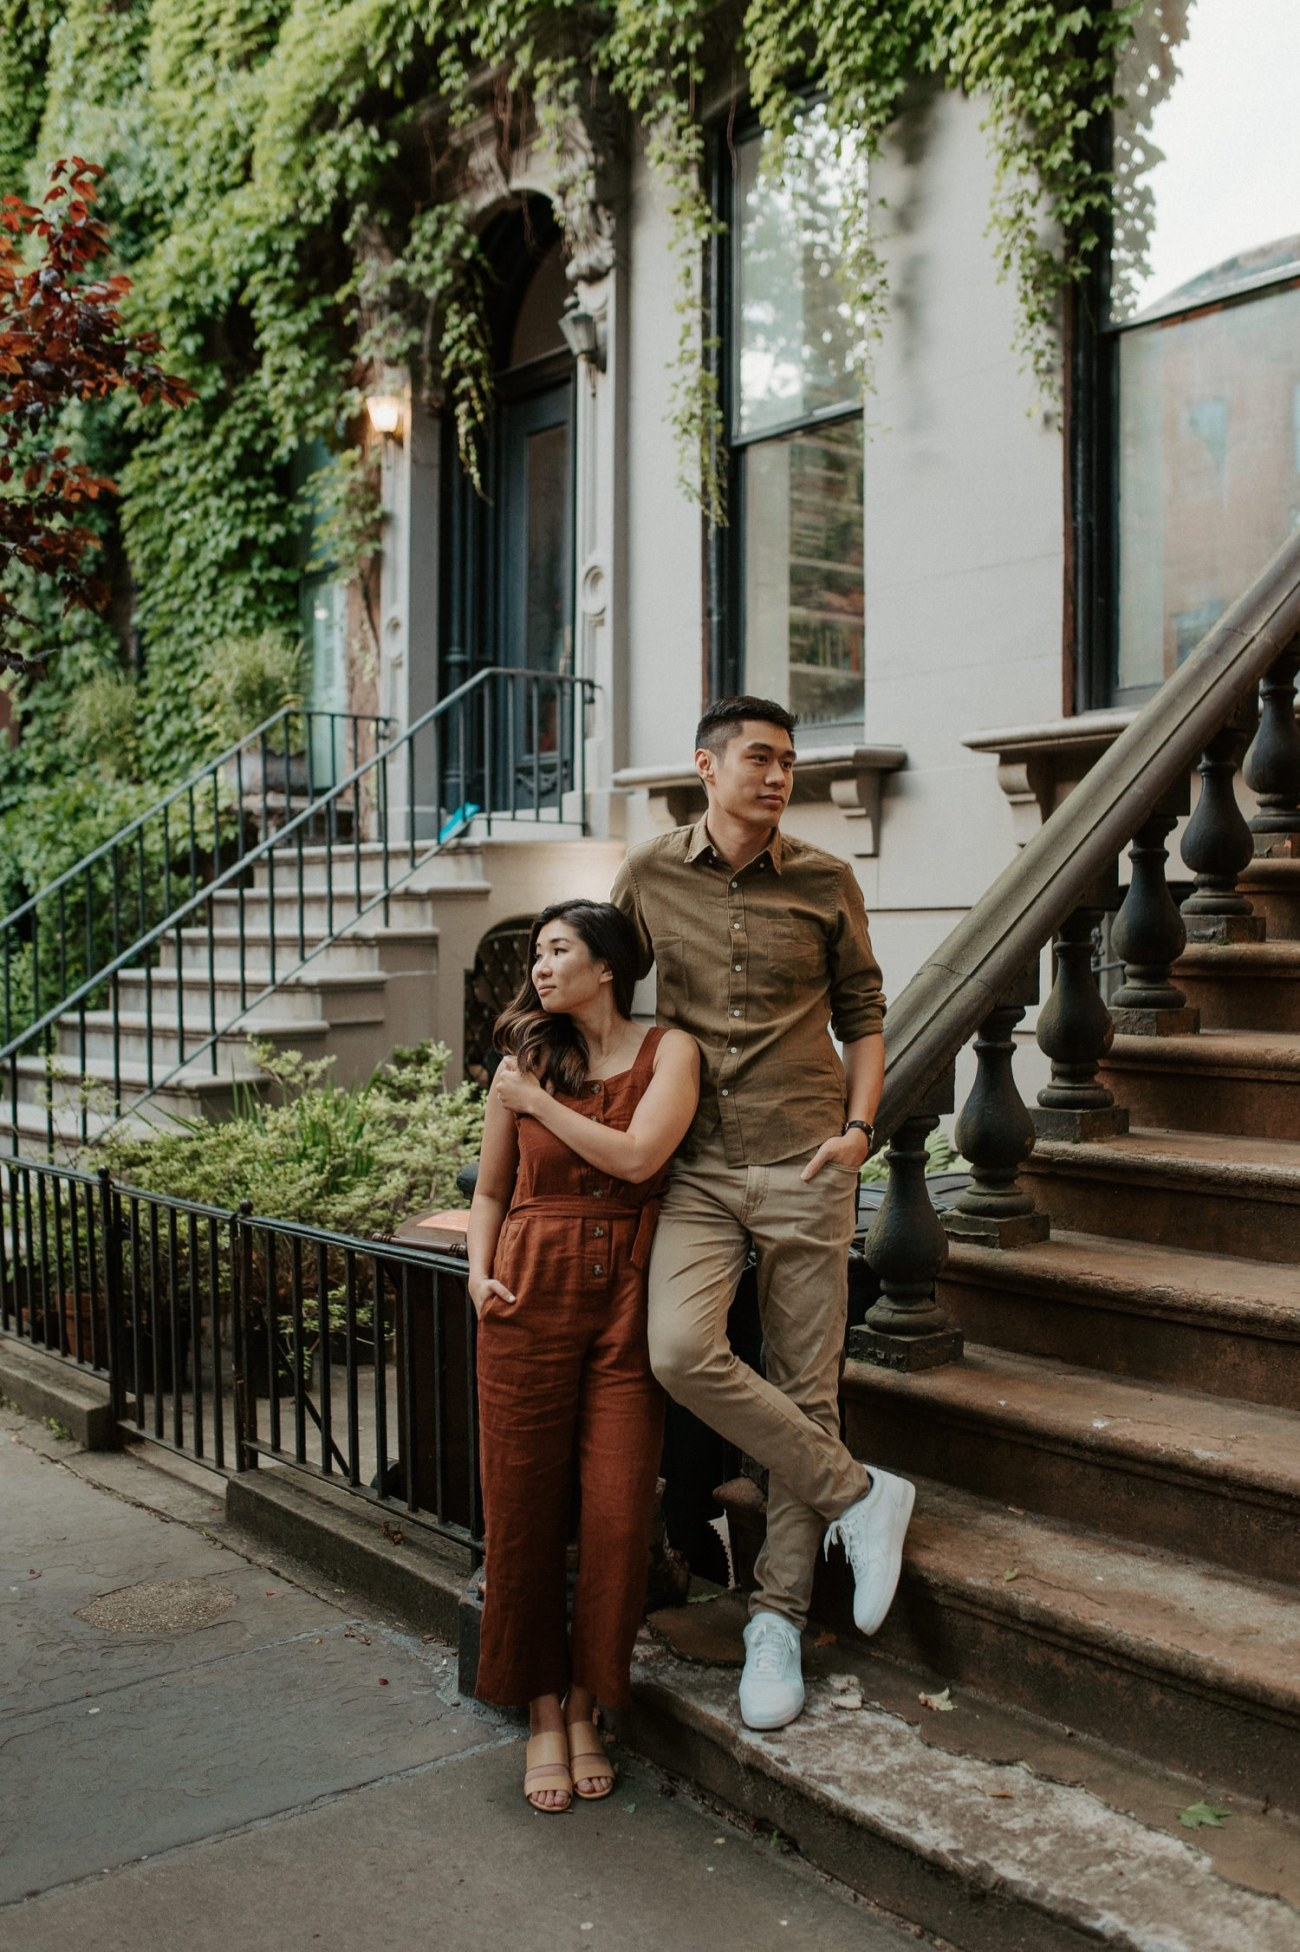 Fort Greene Brooklyn Engagement Session Brooklyn Wedding Photographer New York Wedding Photographer Anais Possamai Photography 016